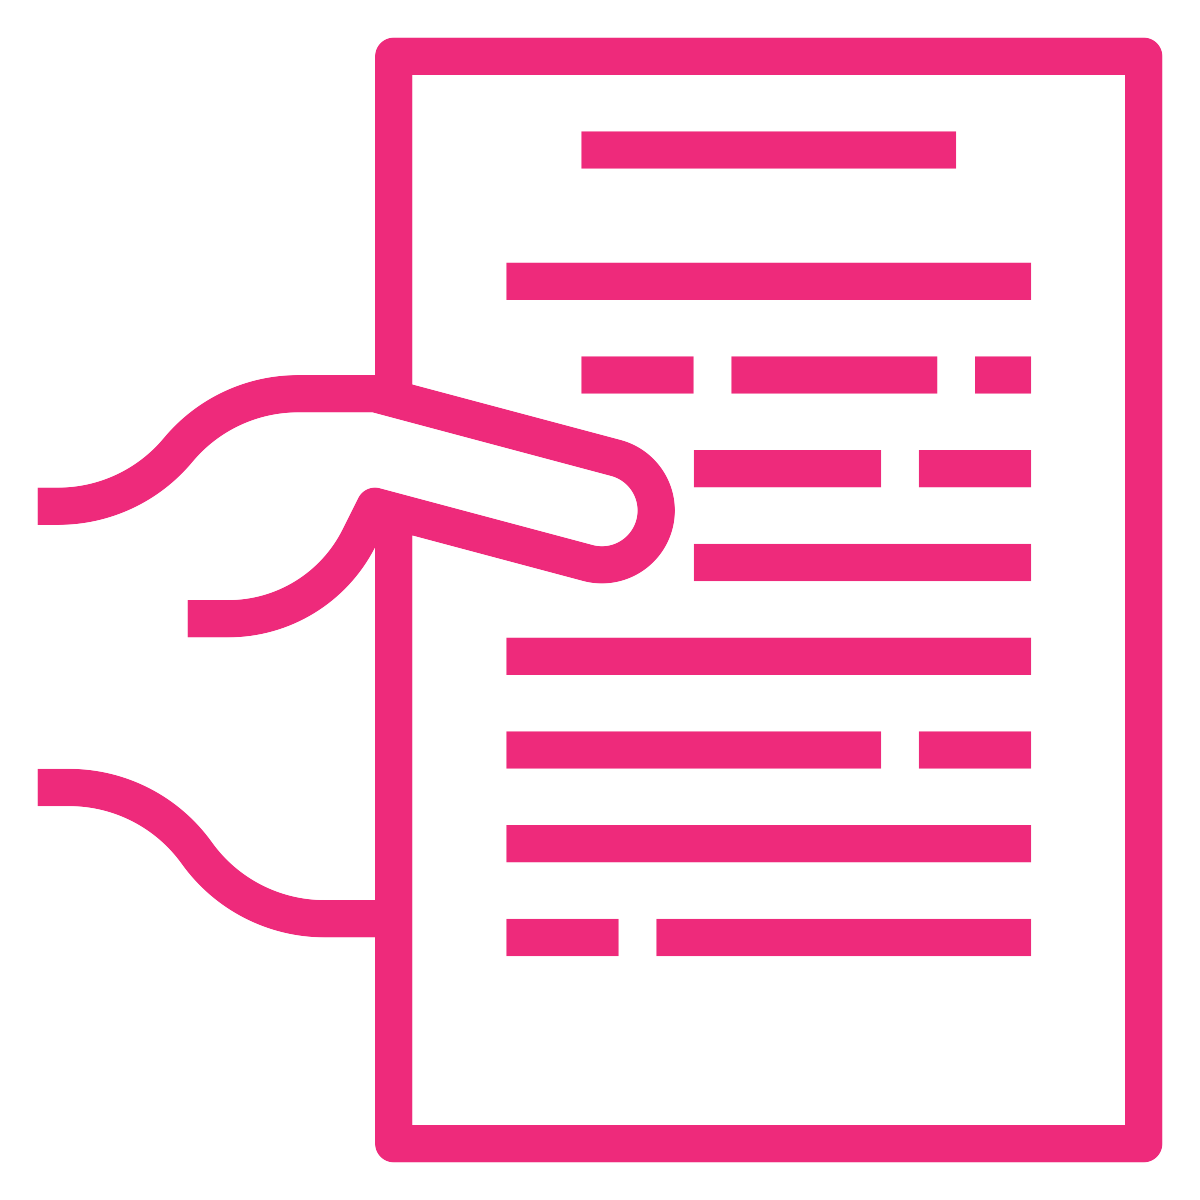 submit pink.png